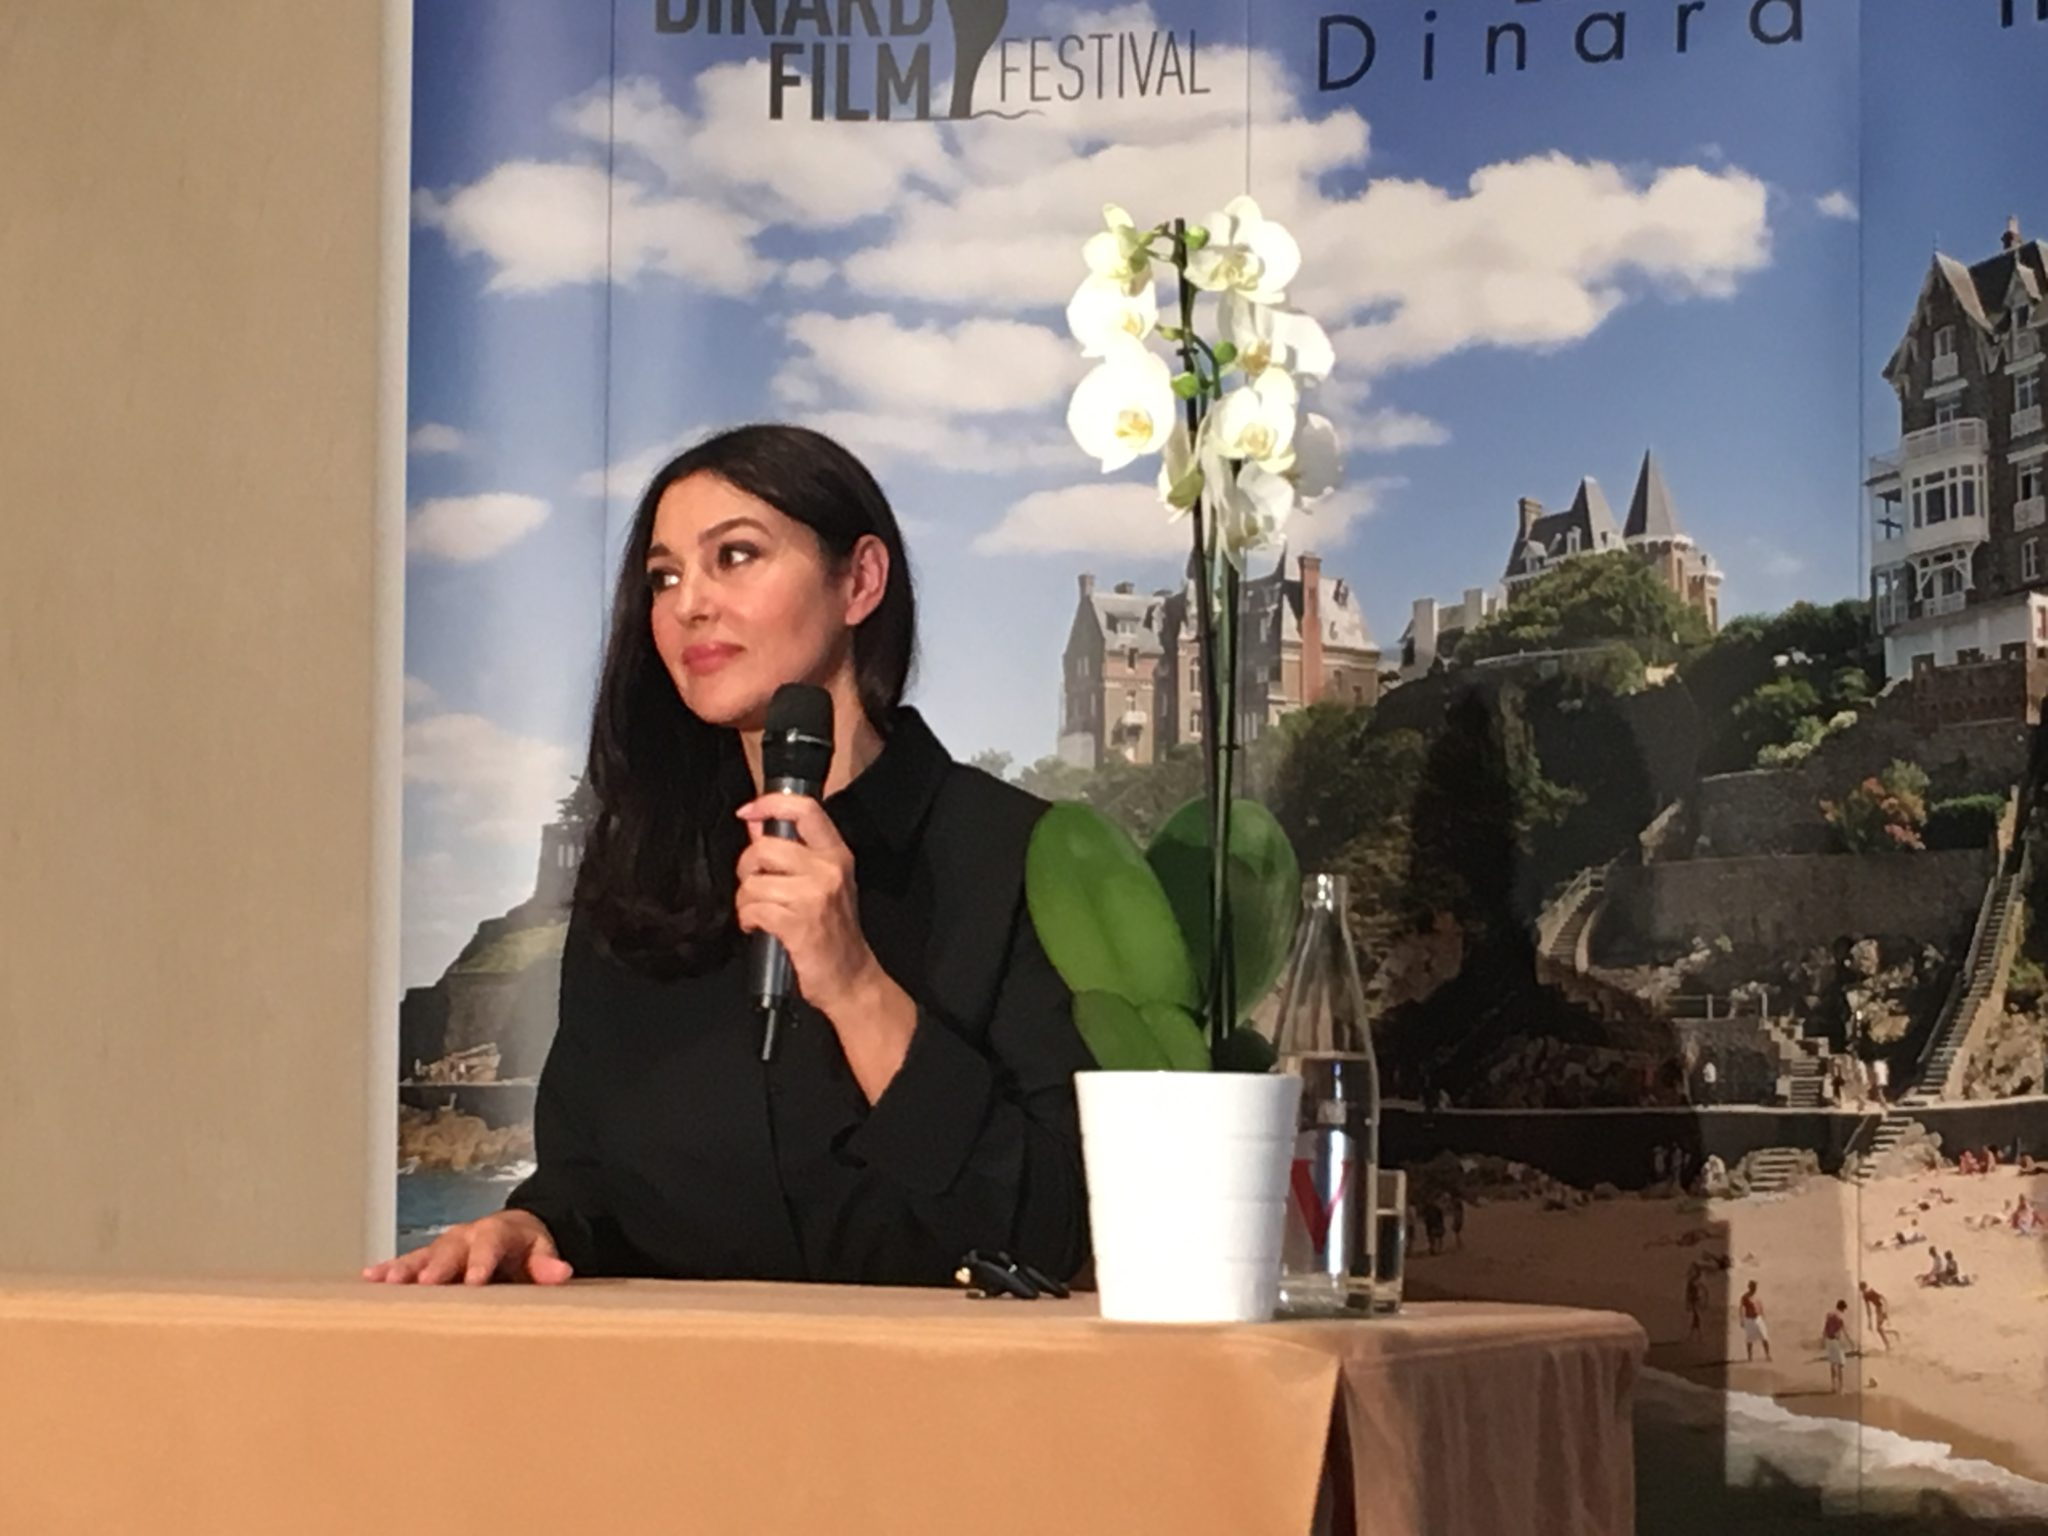 Monica Bellucci Dinard Film Festival 2018 interview rencontre